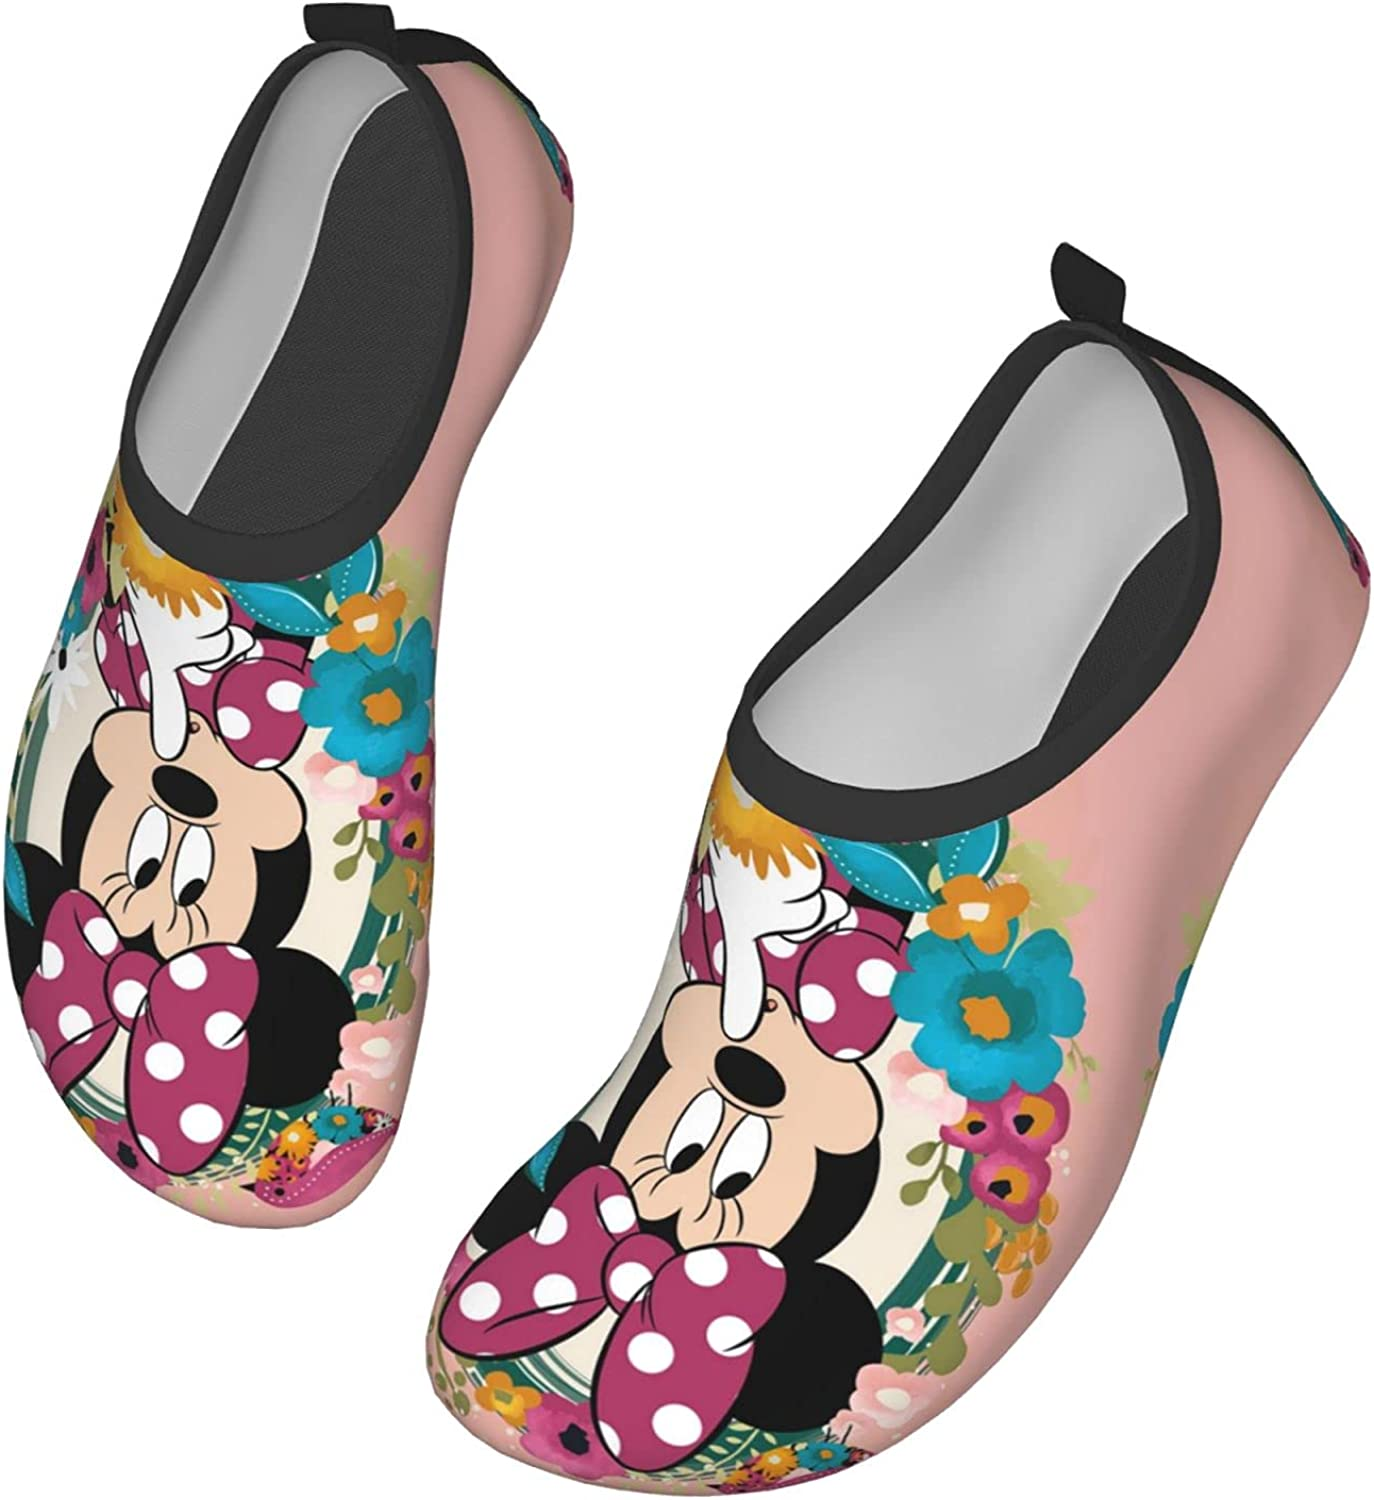 Mawon Mick-Ey and Minnie Mouse Water Shoes Men's Women's Swim Shoes Barefoot Beach Pool Shoes Quick-Dry Yoga for Surf Swim Water Sport